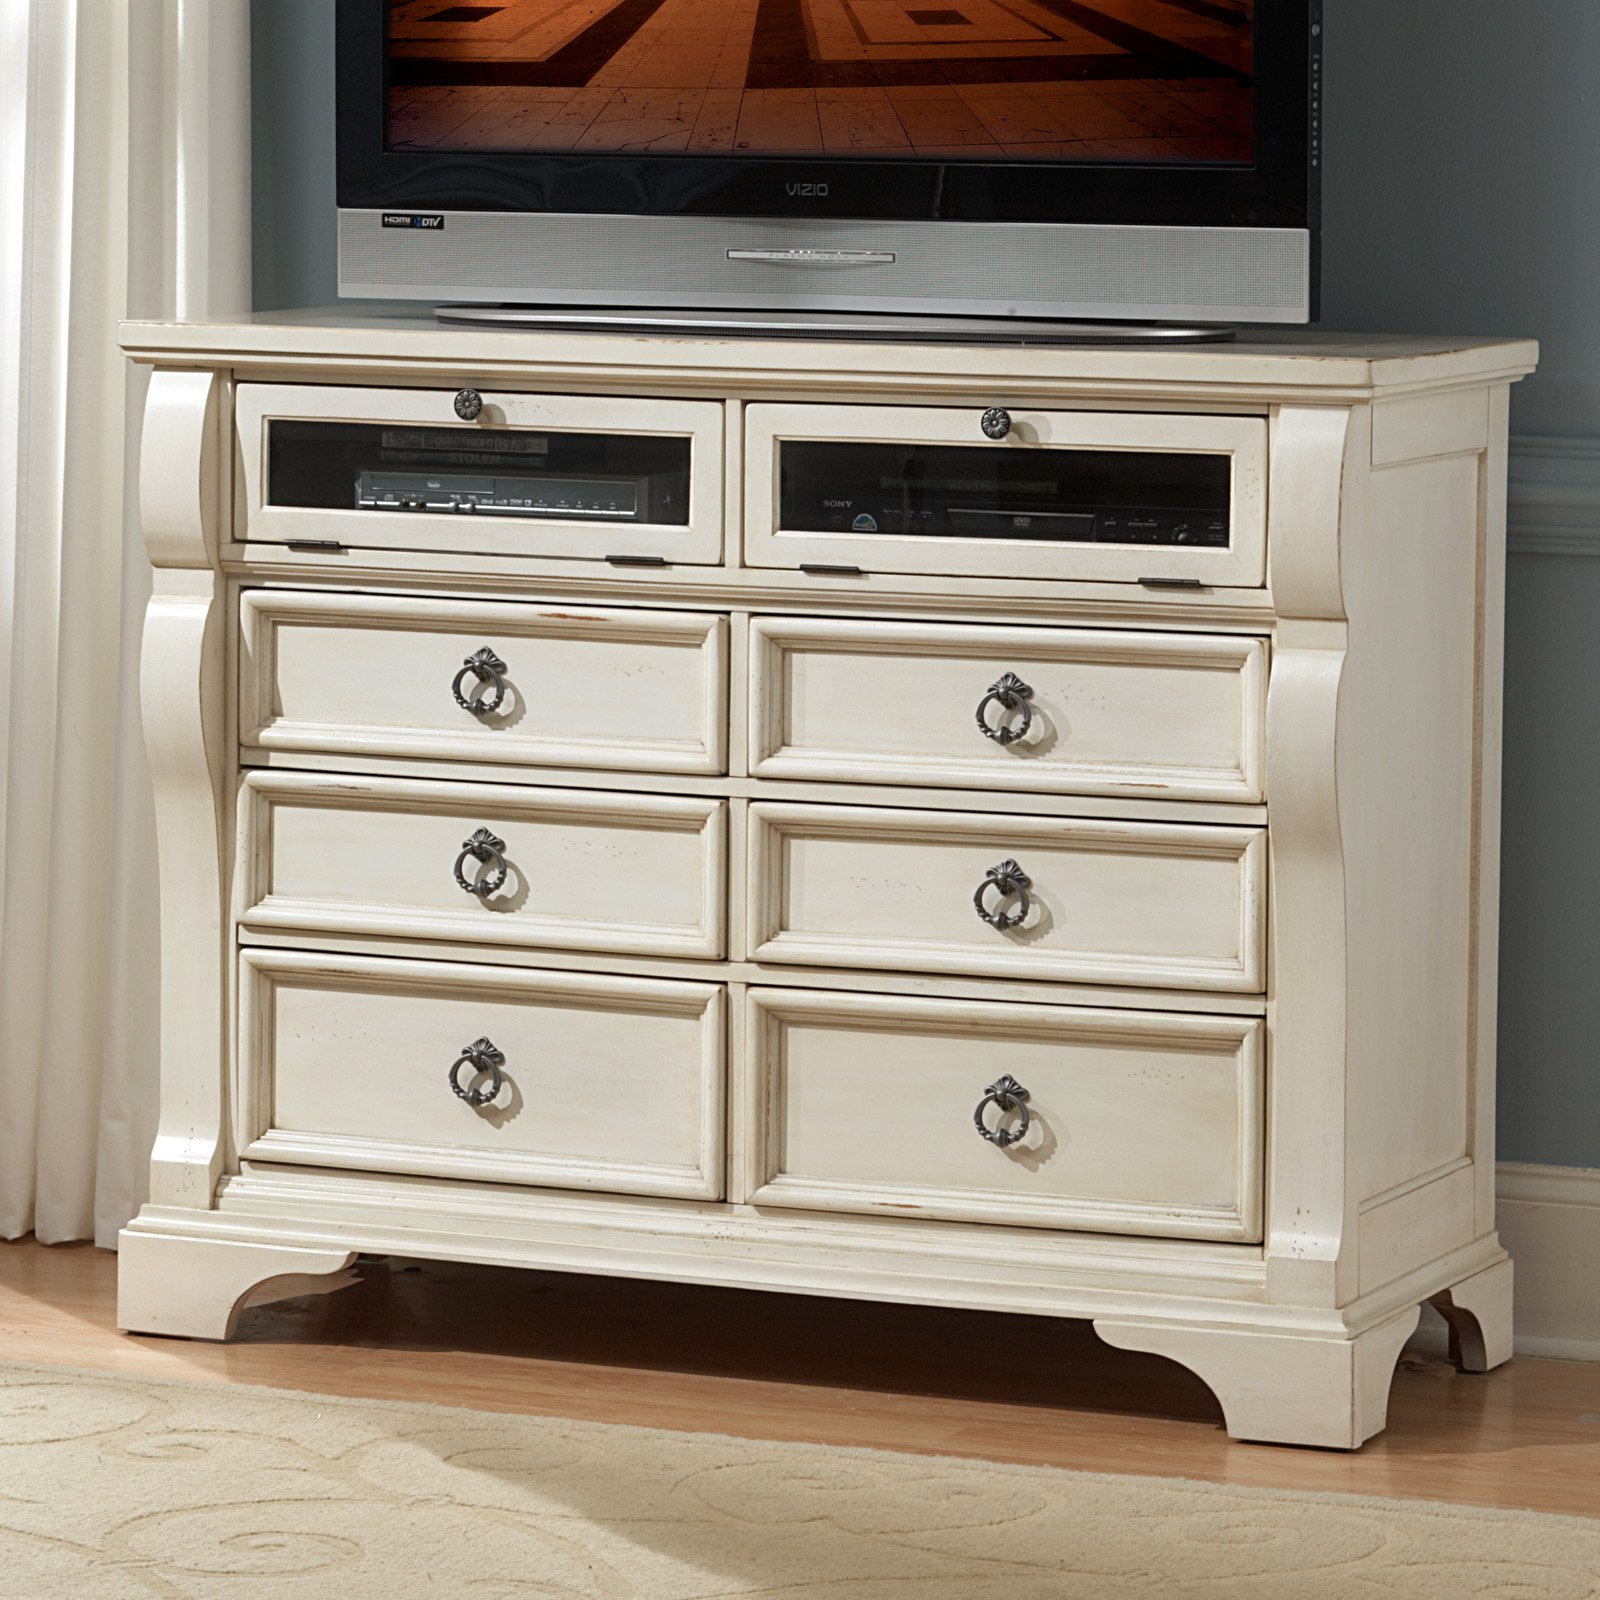 American Woodcrafters Heirloom Media Chest-Antique White